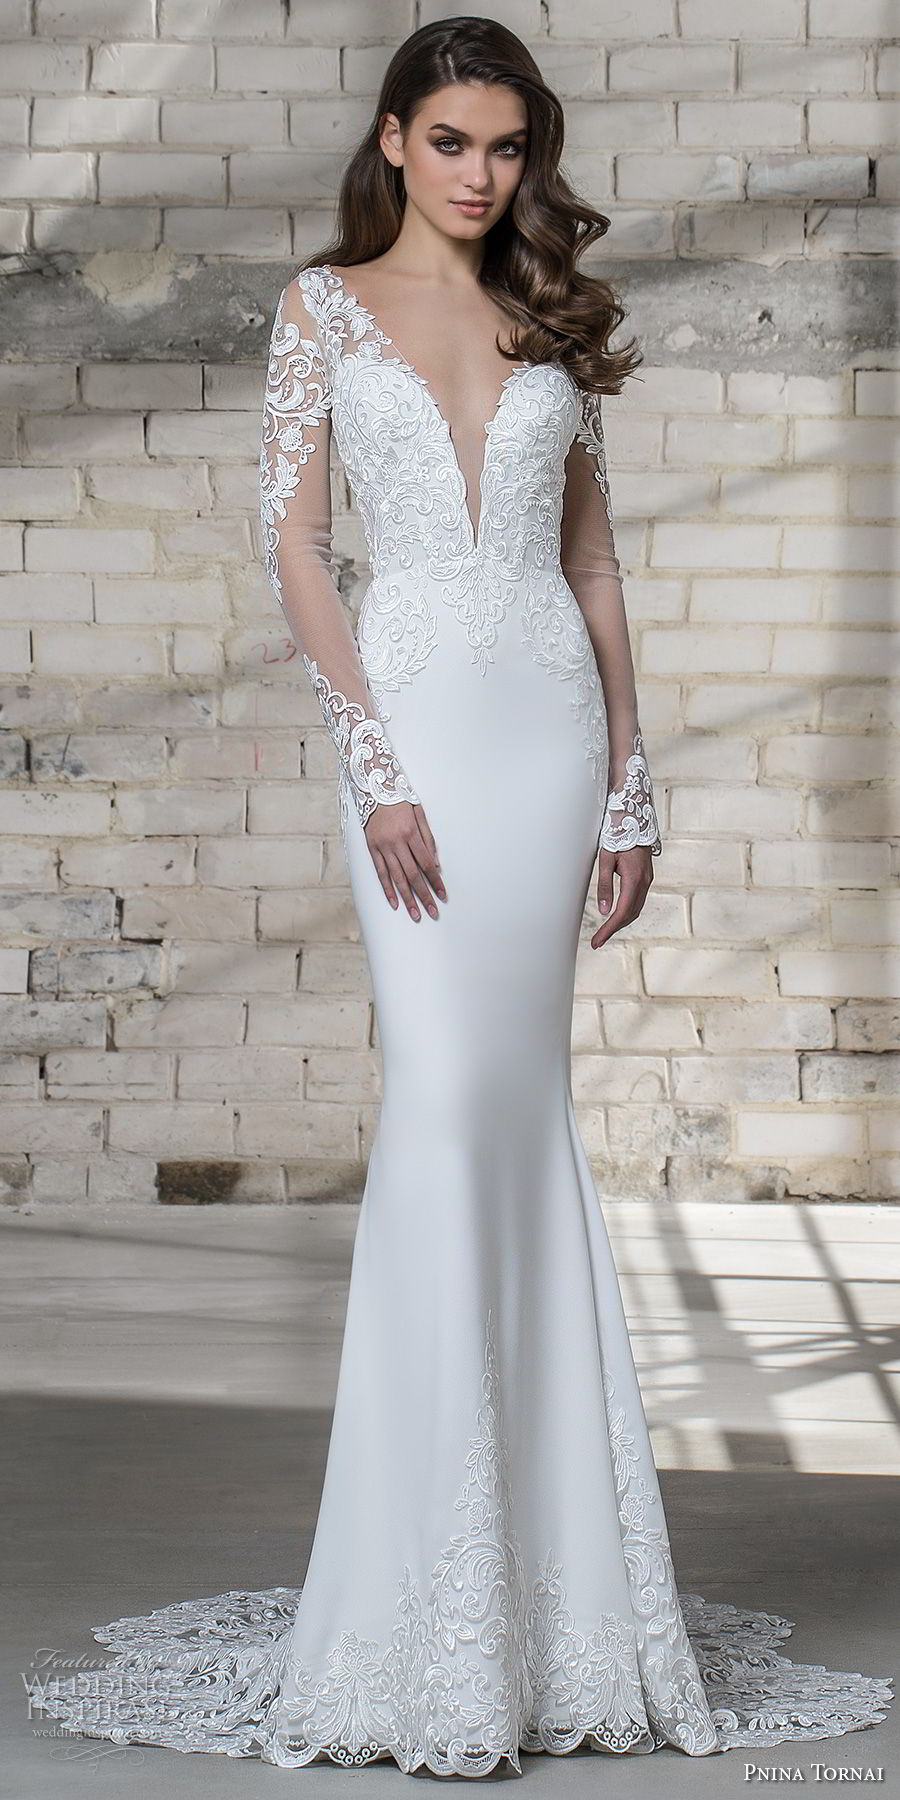 pnina tornai 2019 love bridal long sleeves deep plunging v neck heavily embellished bodice elegant sheath wedding dress sheer button back chapel train (10) fv